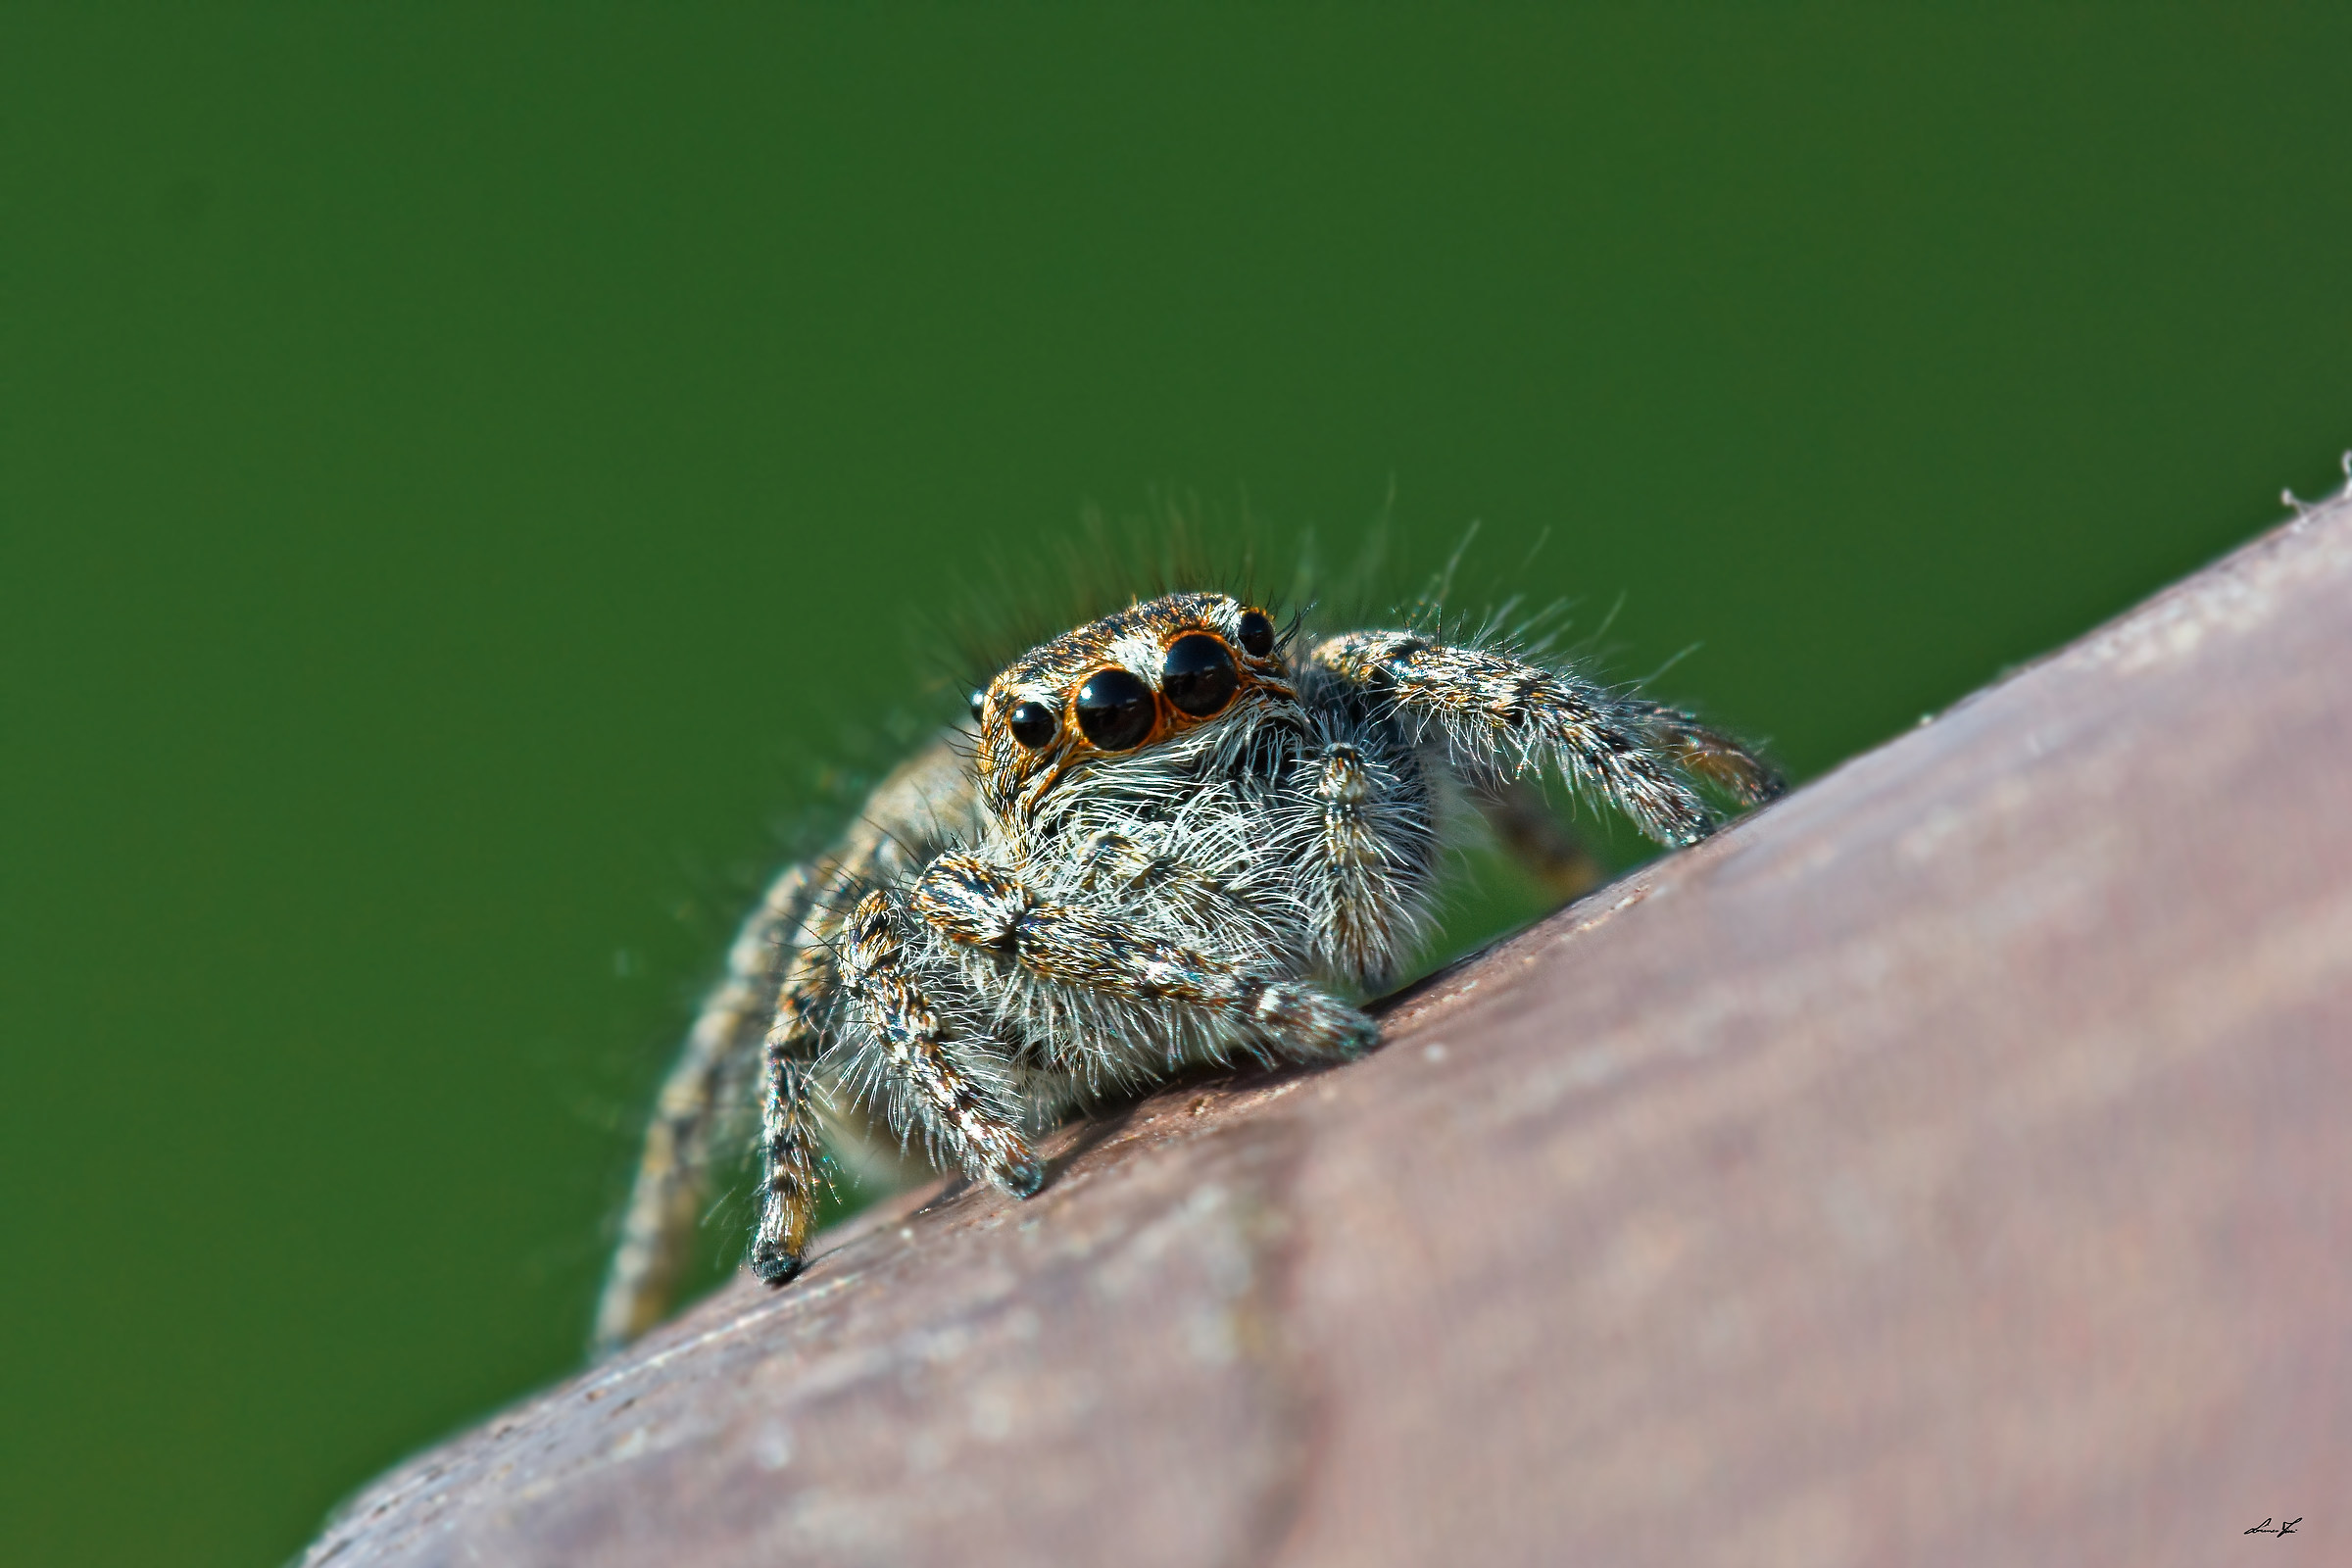 But it is a cross between a spider and a tiger?...